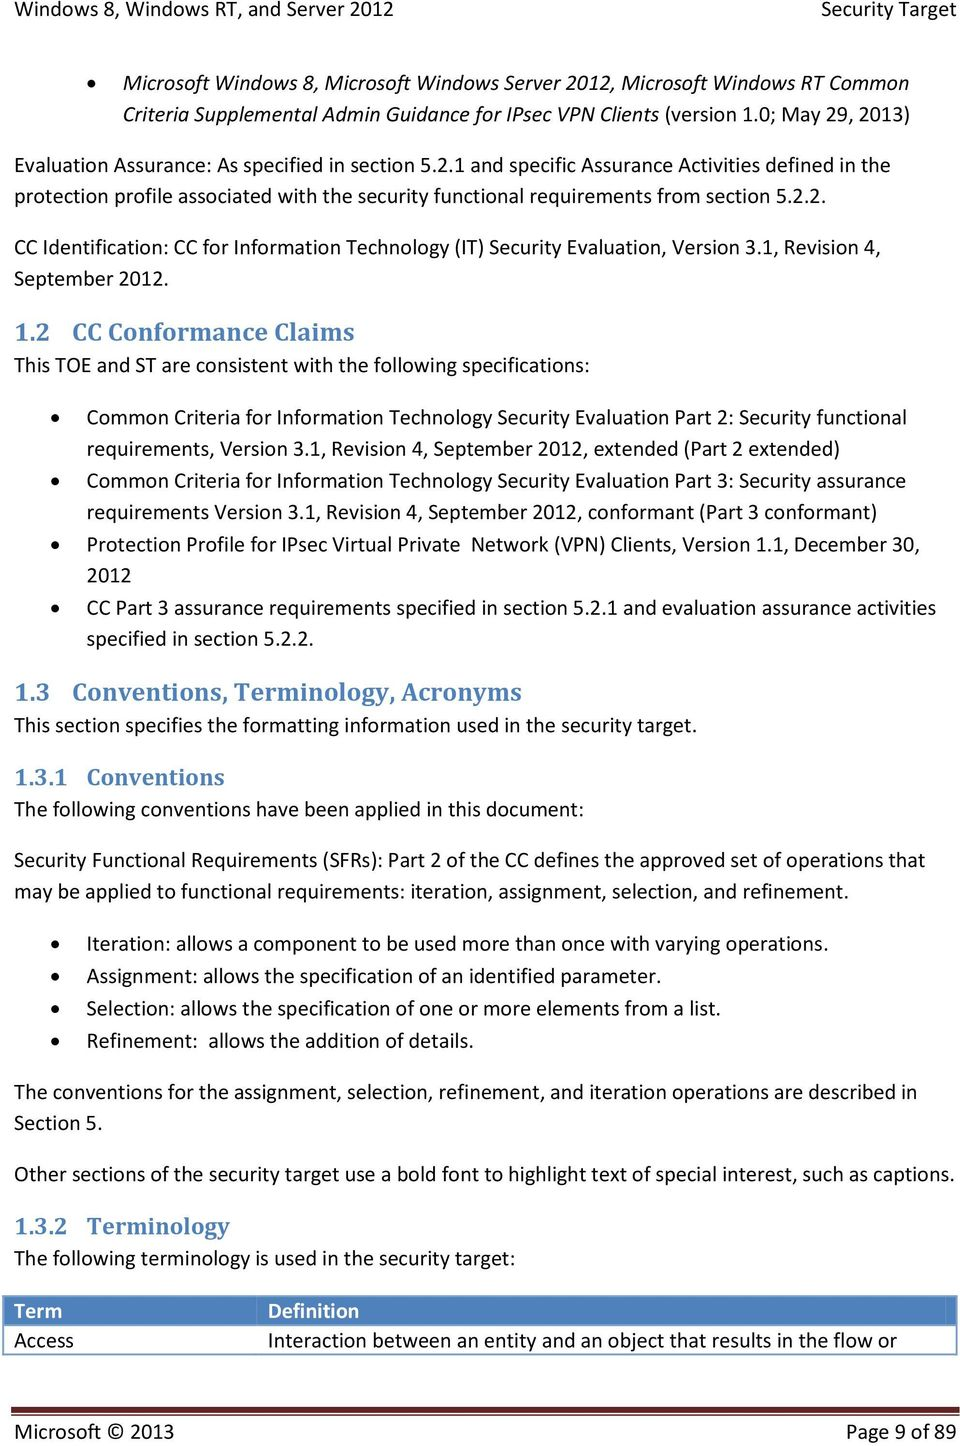 2.2. CC Identification: CC for Information Technology (IT) Security Evaluation, Version 3.1, Revision 4, September 2012. 1.